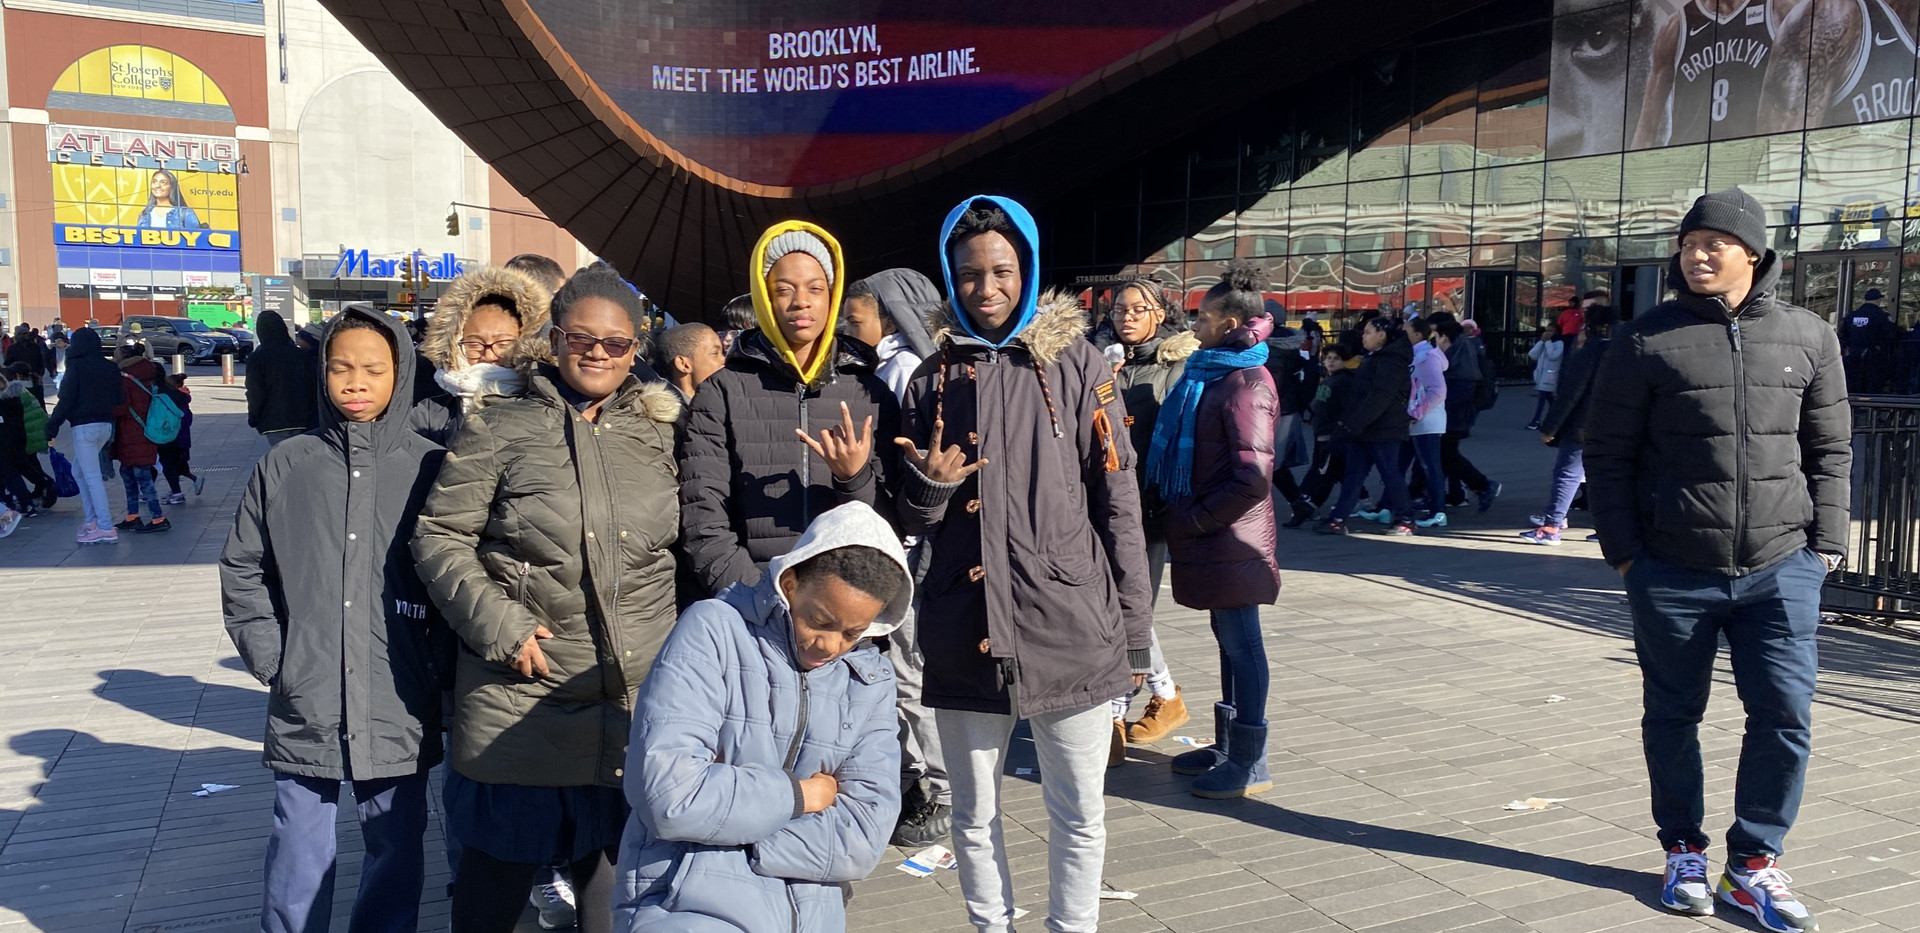 We traveled to Barclays Center